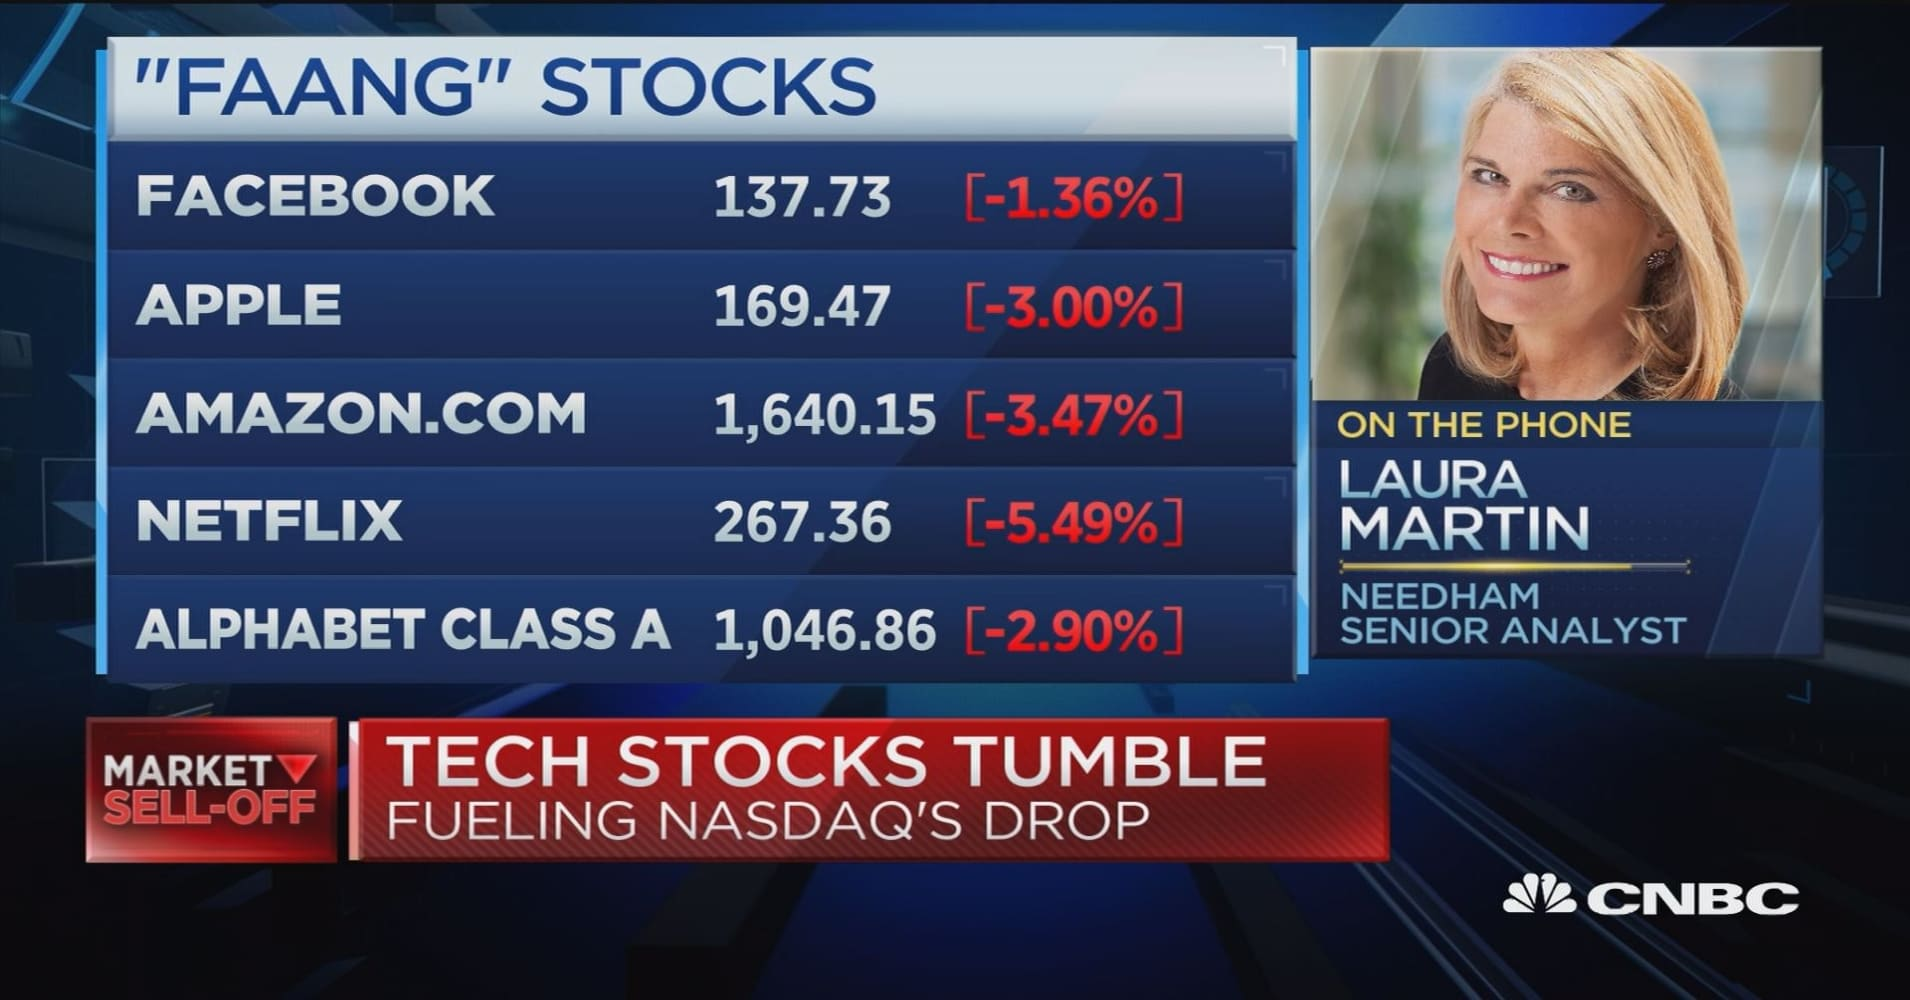 You cannot be a bull on Netflix: Analyst